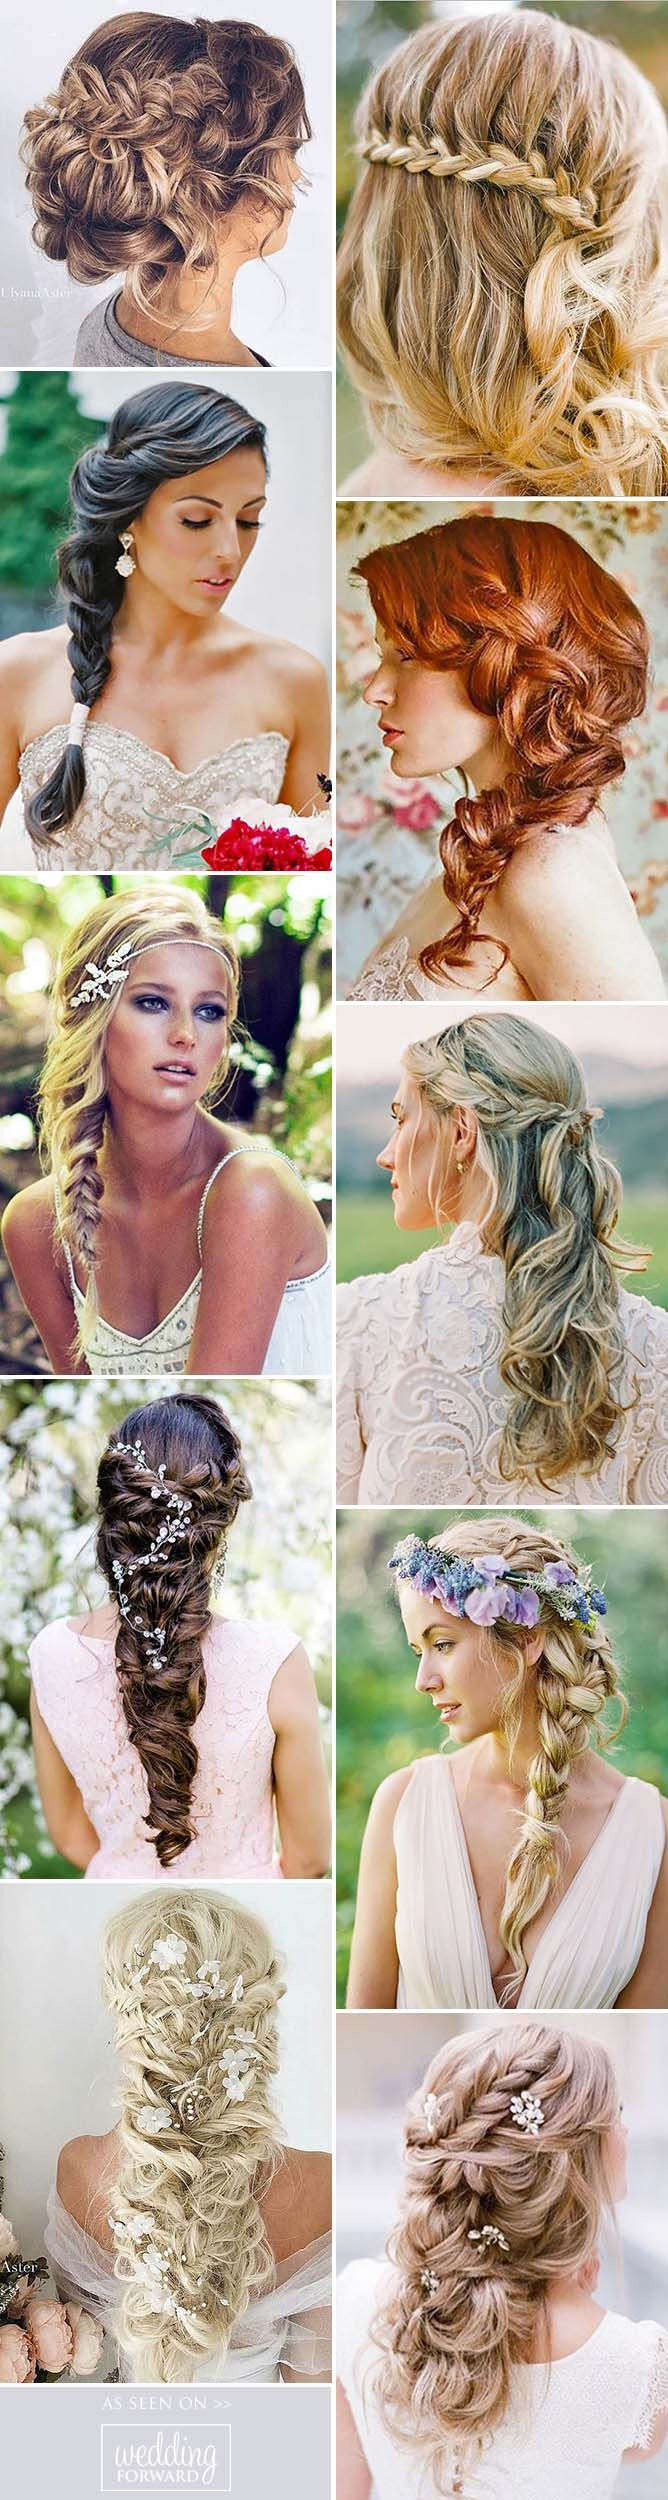 Braided Wedding Hair Ideas You Will Love ❤ From soft waves to gorgeous wedding...